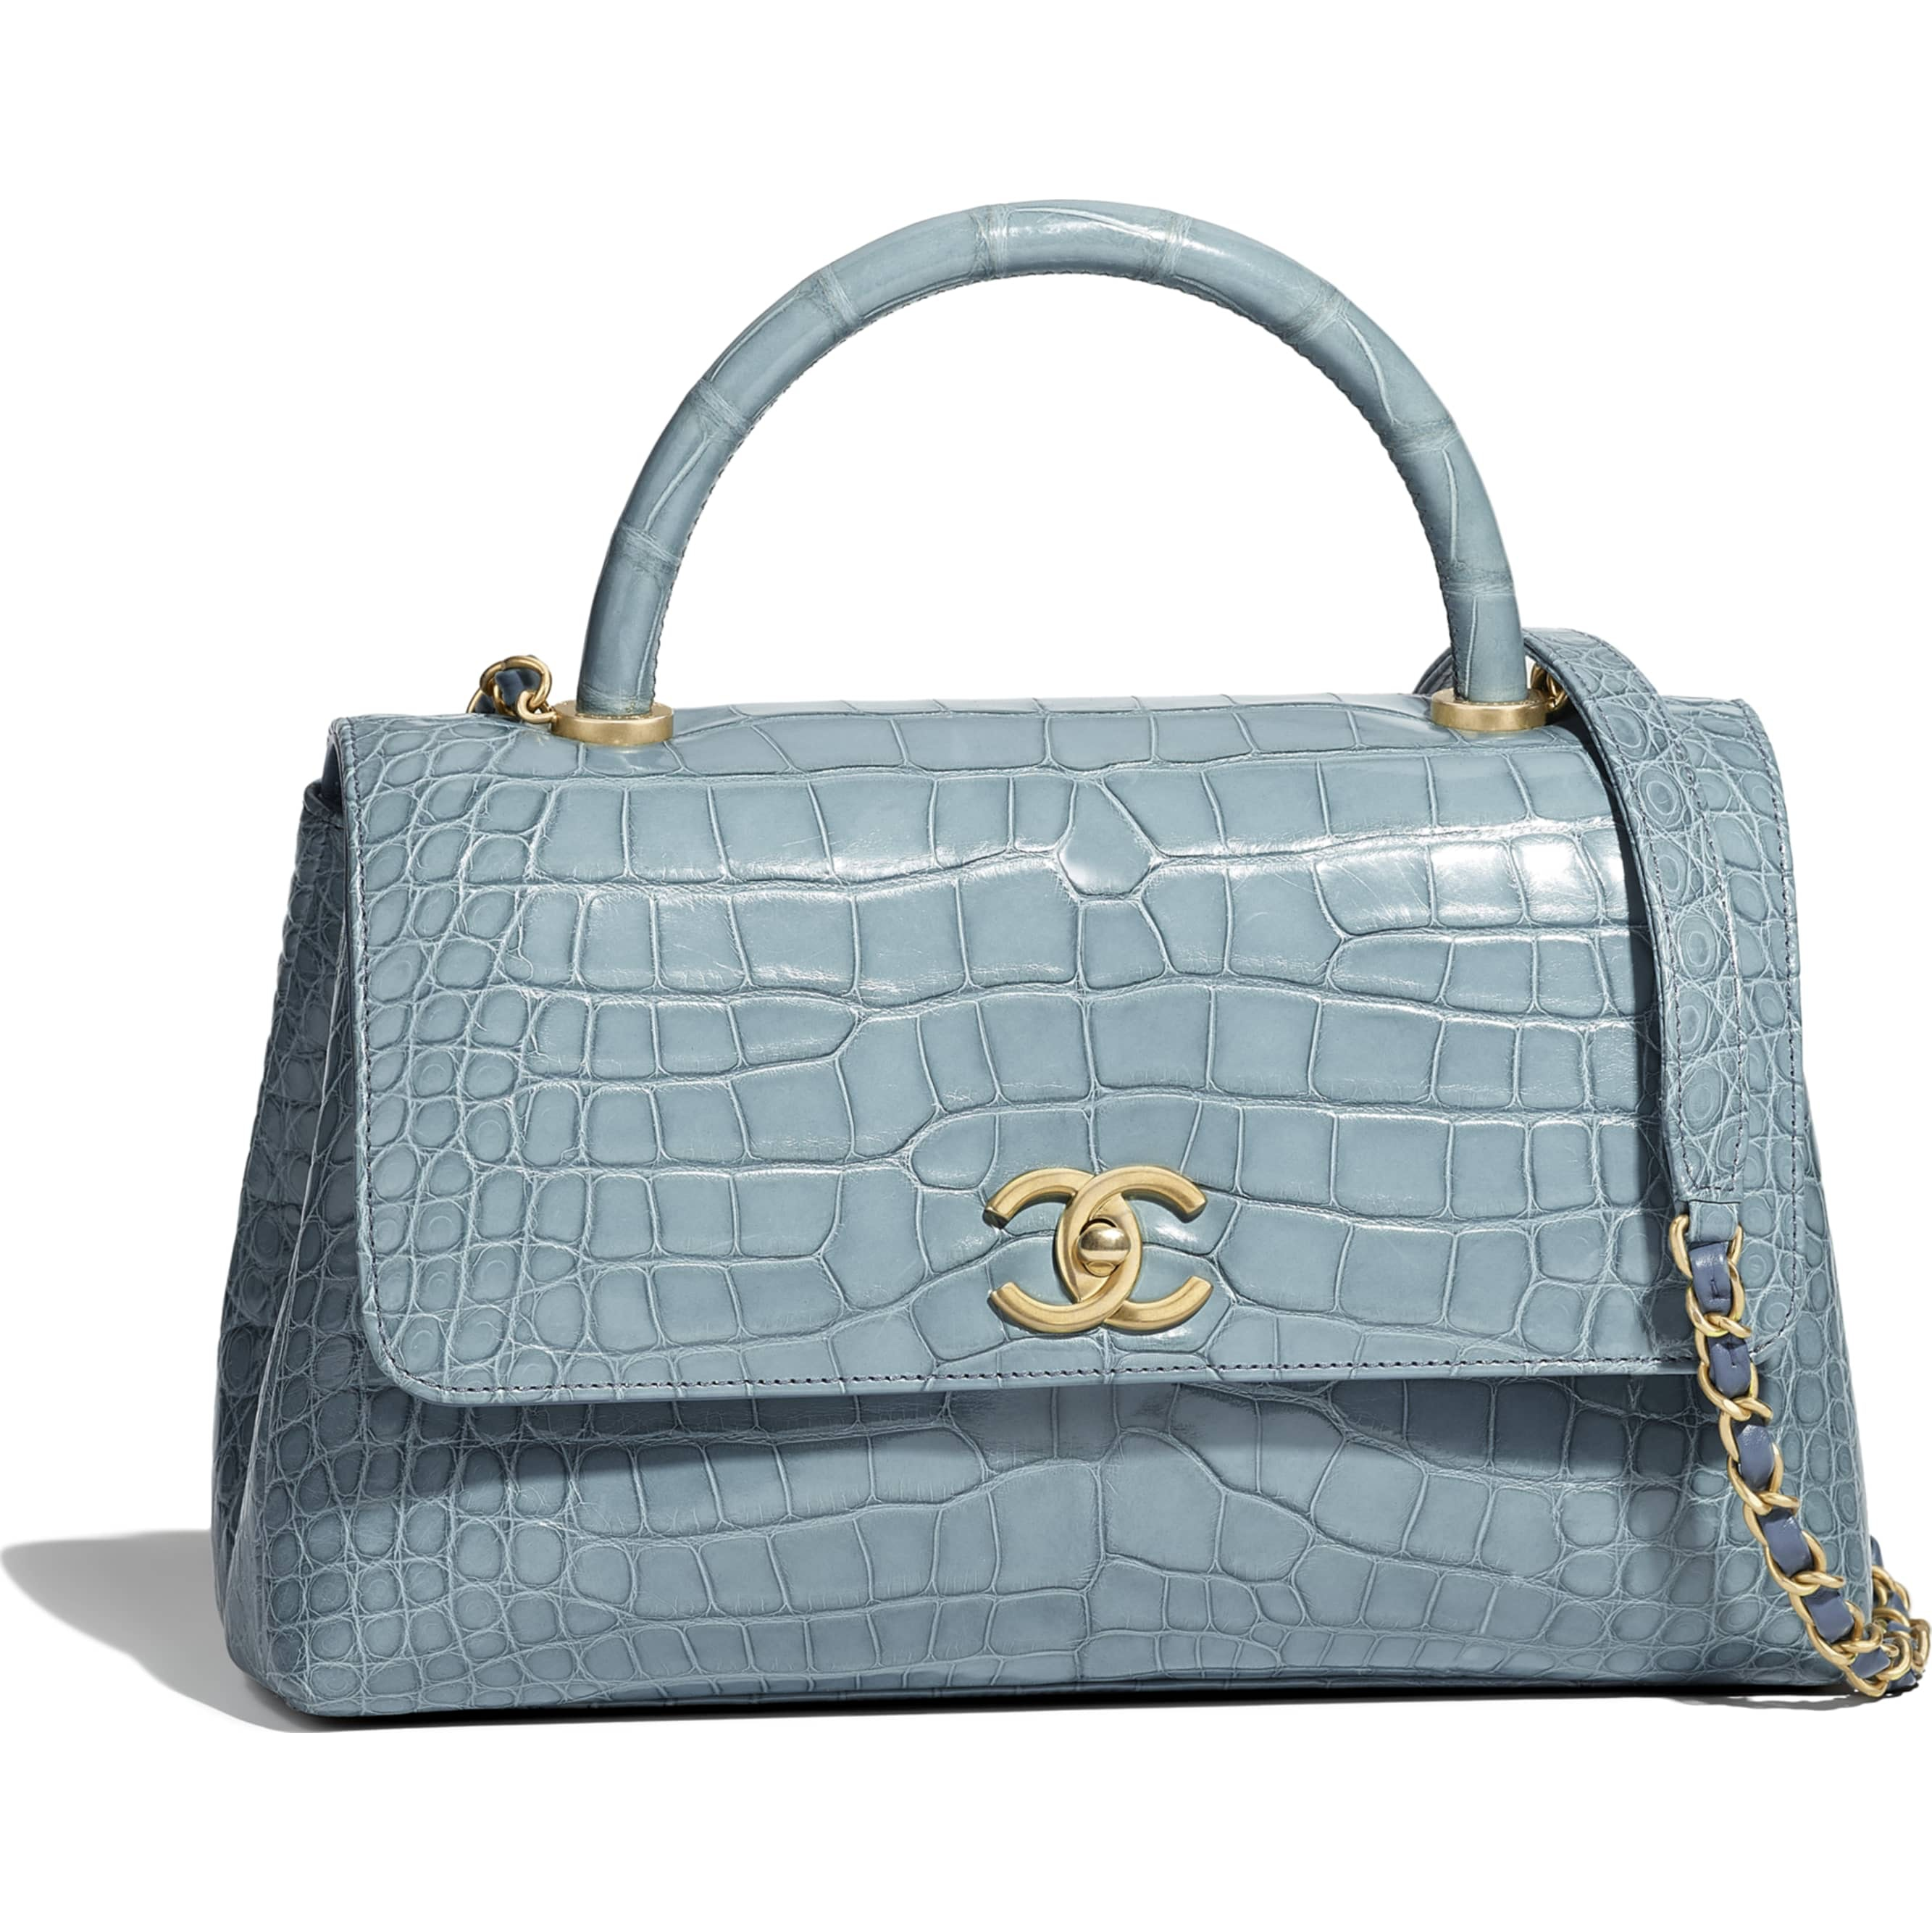 Chanel Flap Bag with Top Handle Blue